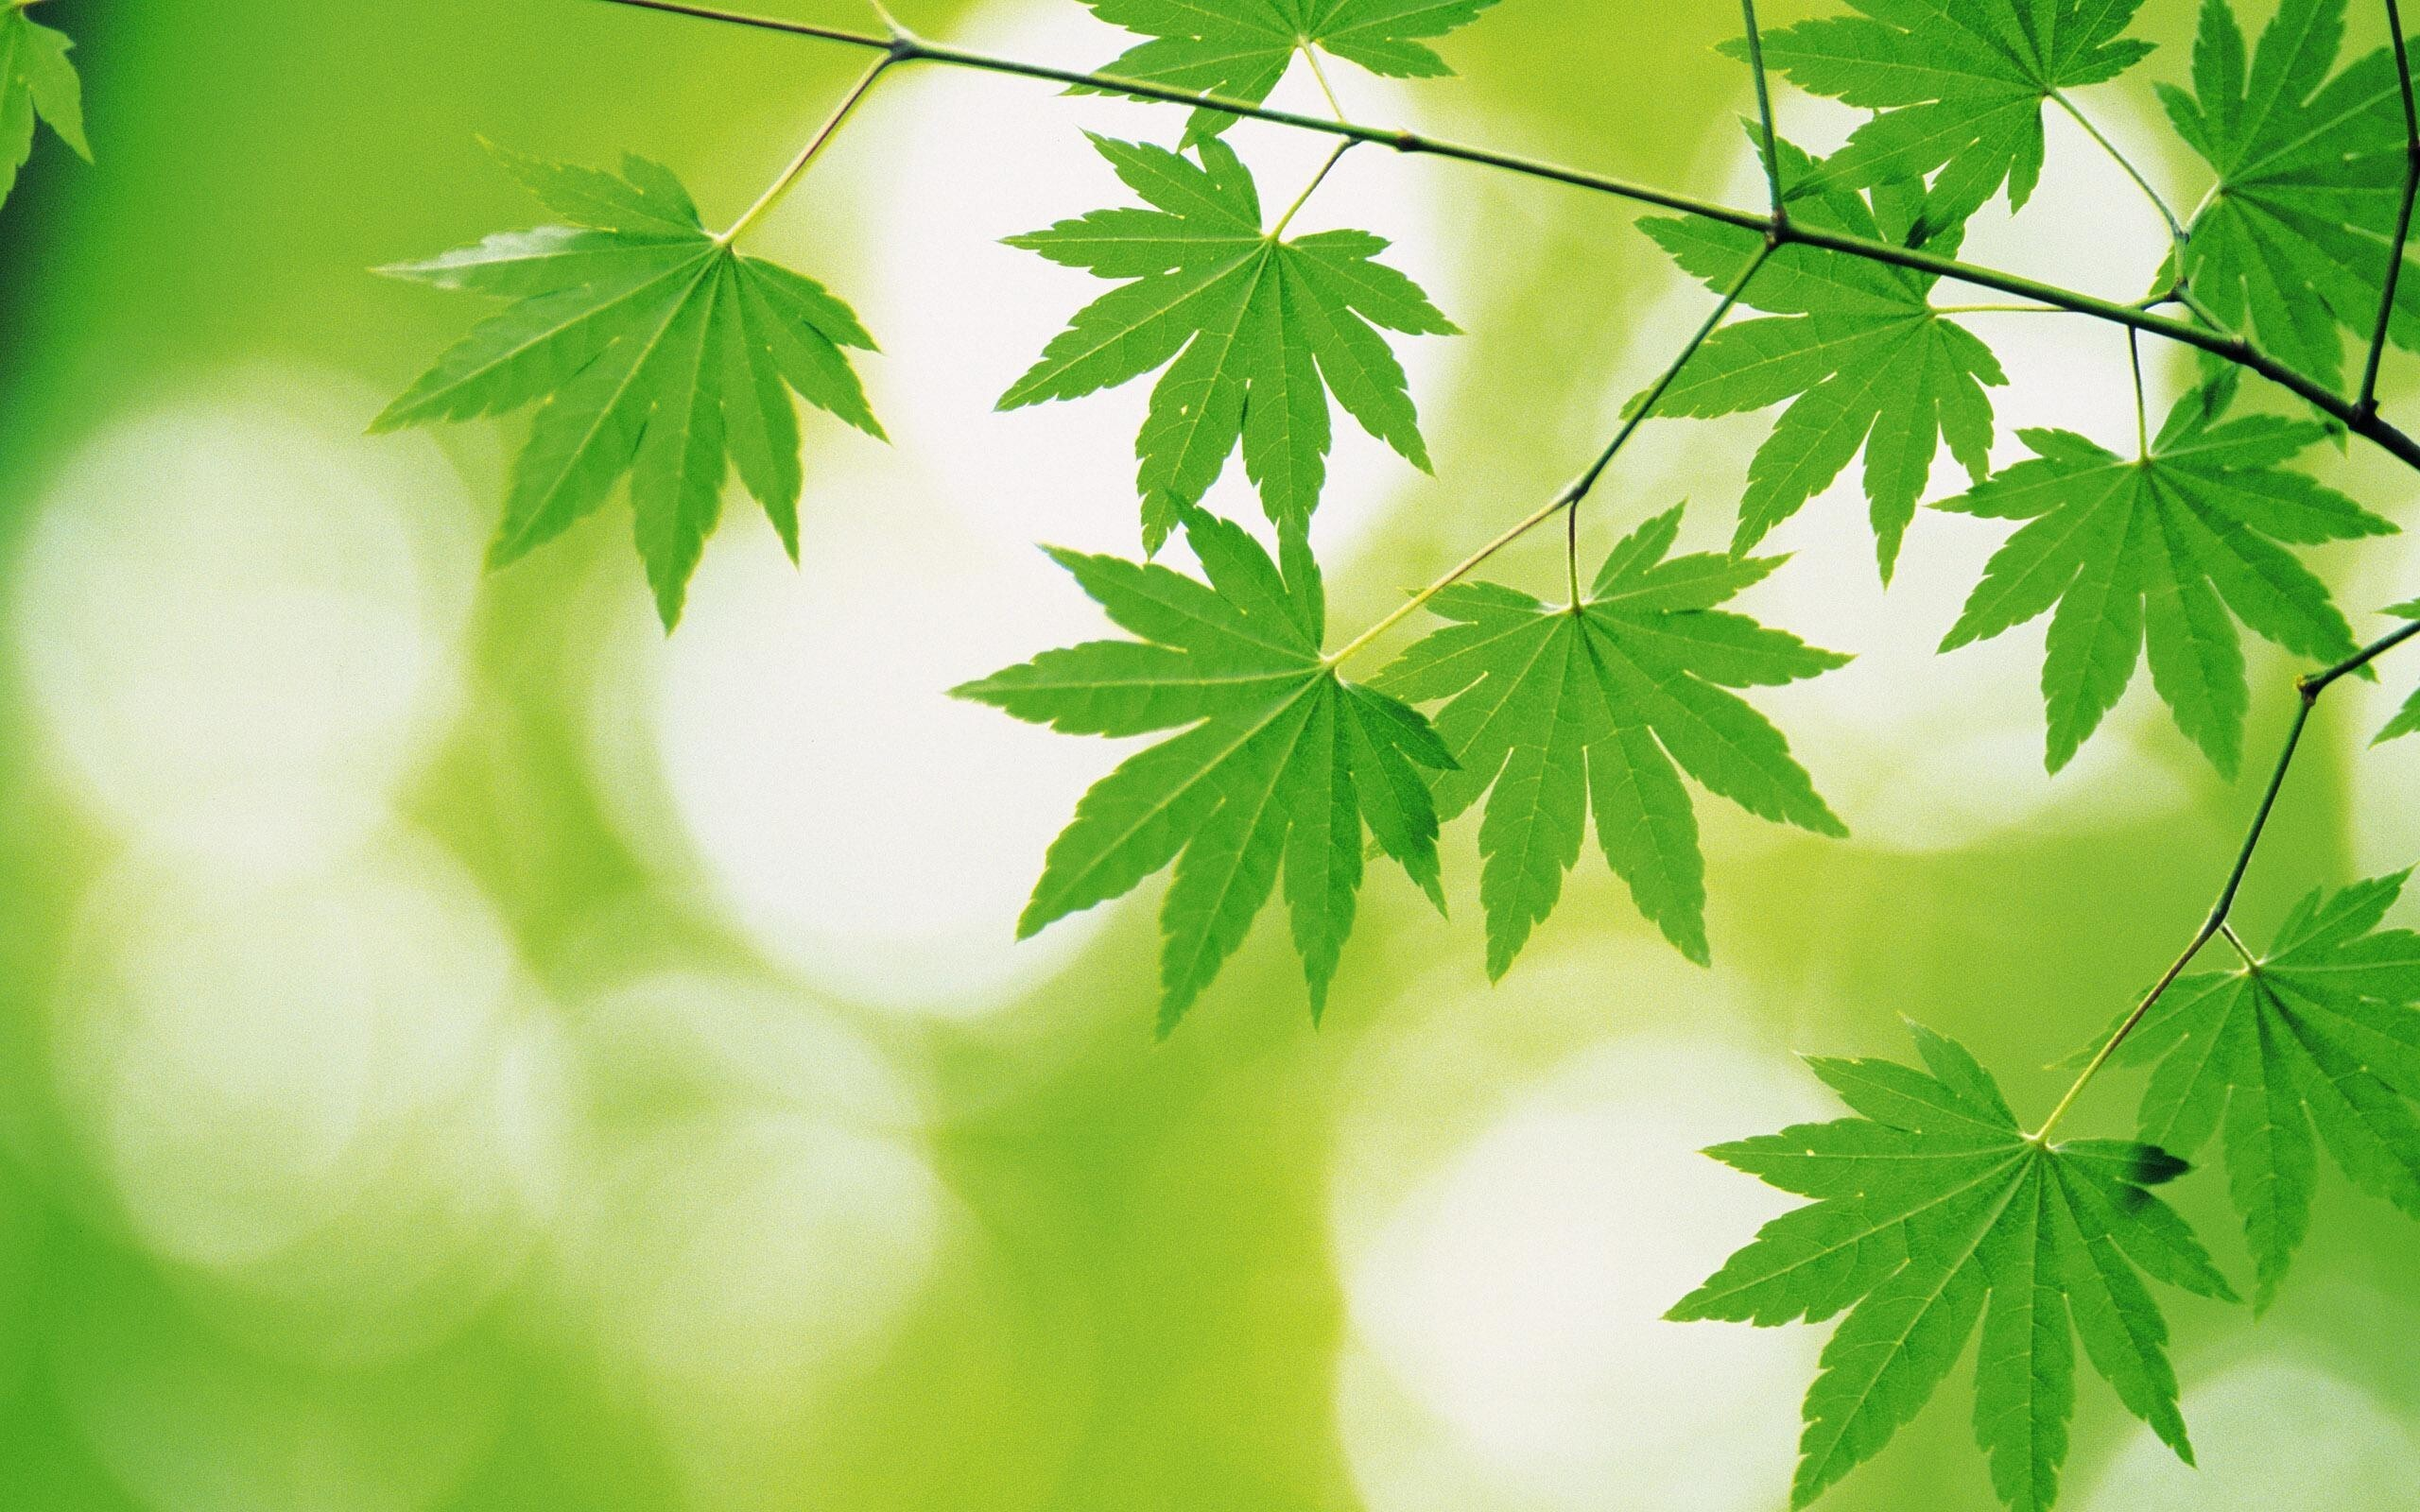 Beautiful Designs of Green Leaves | HD Wallpapers: www.hdnicewallpapers.com/Wallpaper-Download/Trees-and-Leaves...